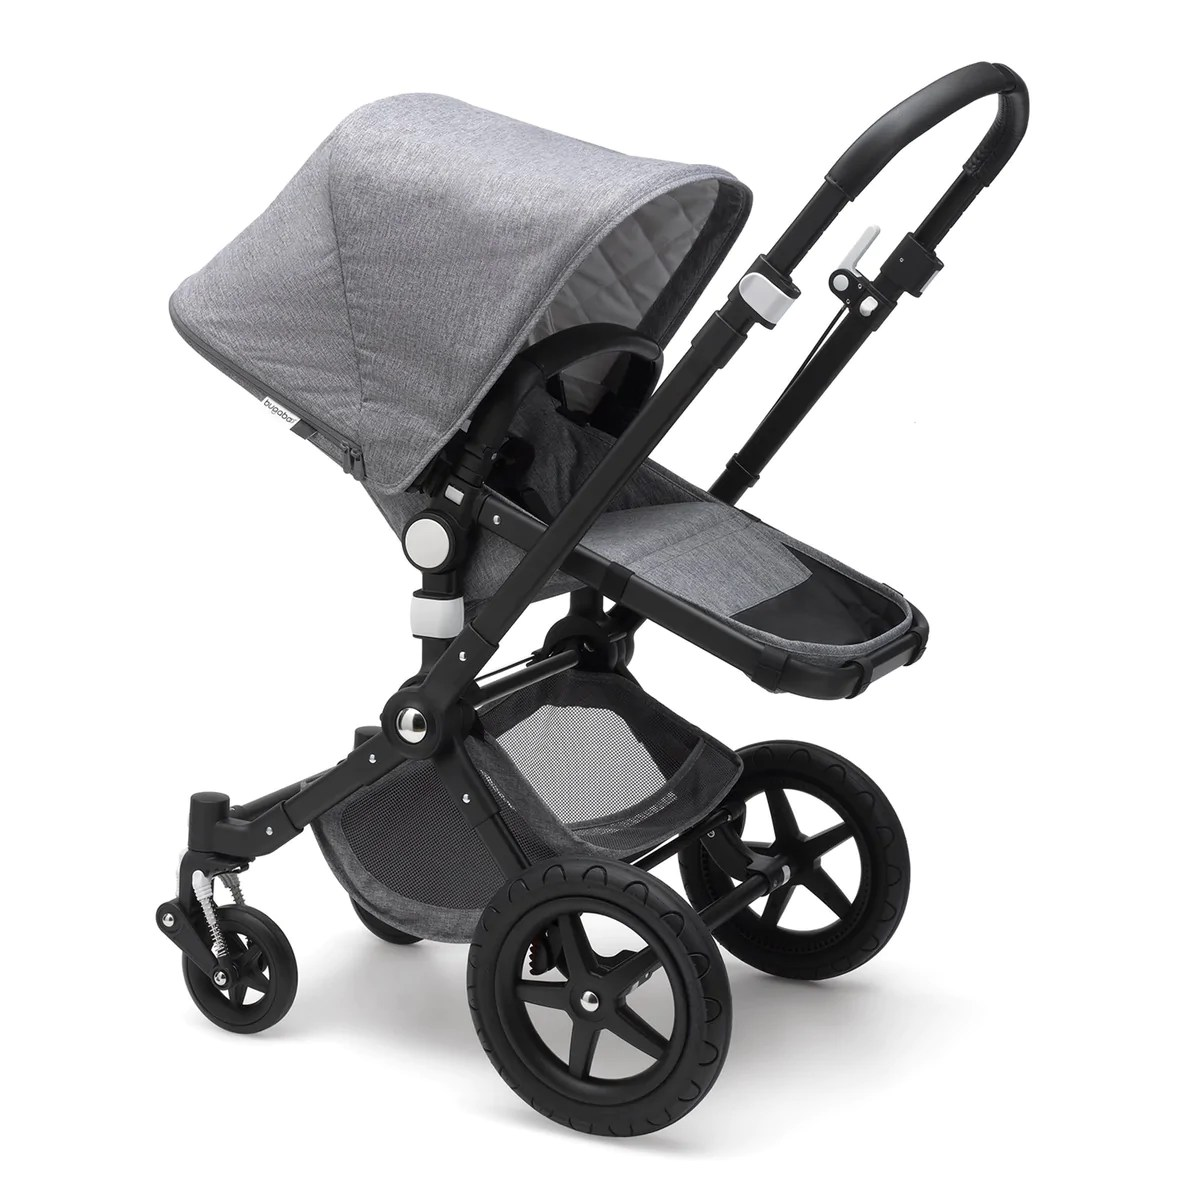 Bugaboo Cameleon 3 Maximum Weight Bugaboo Cameleon3 Classic Grey Melange On Black Chassis